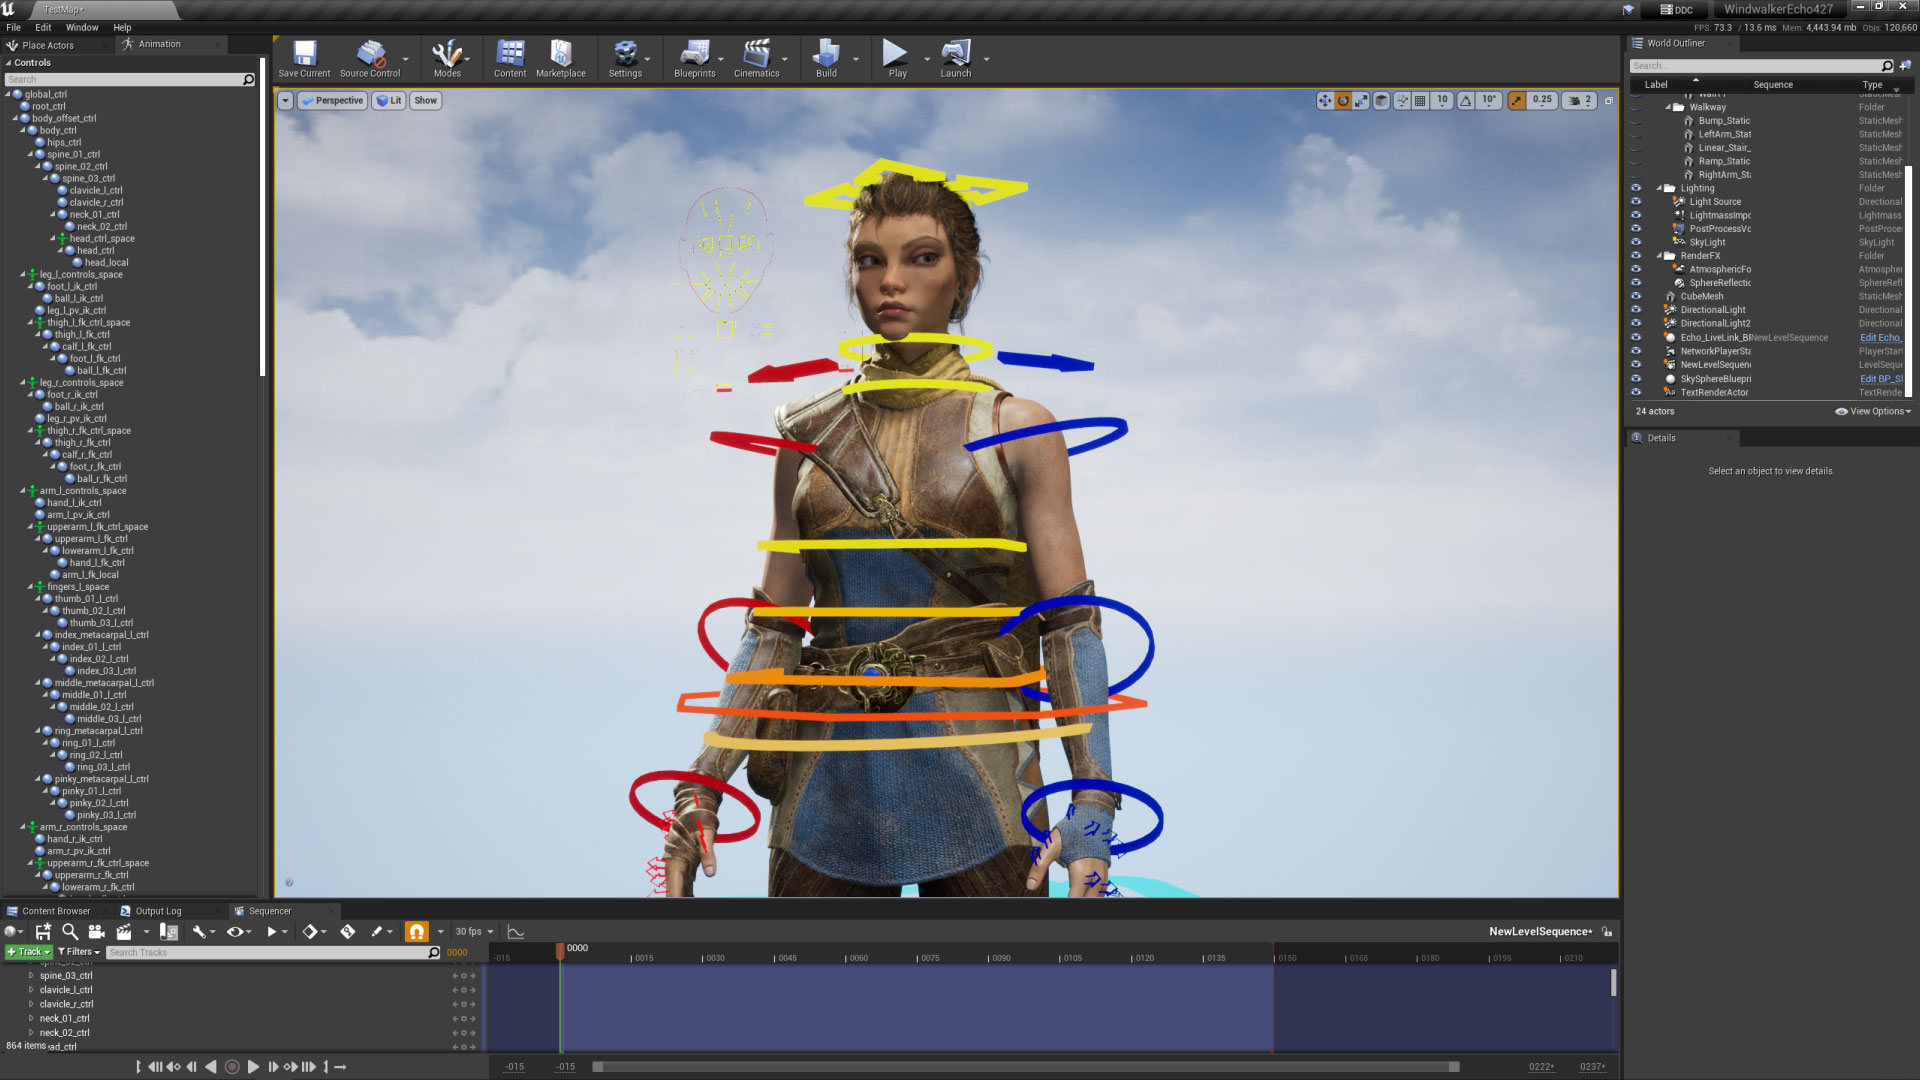 Mold3D Studio: animation techniques aimed at film and TV content